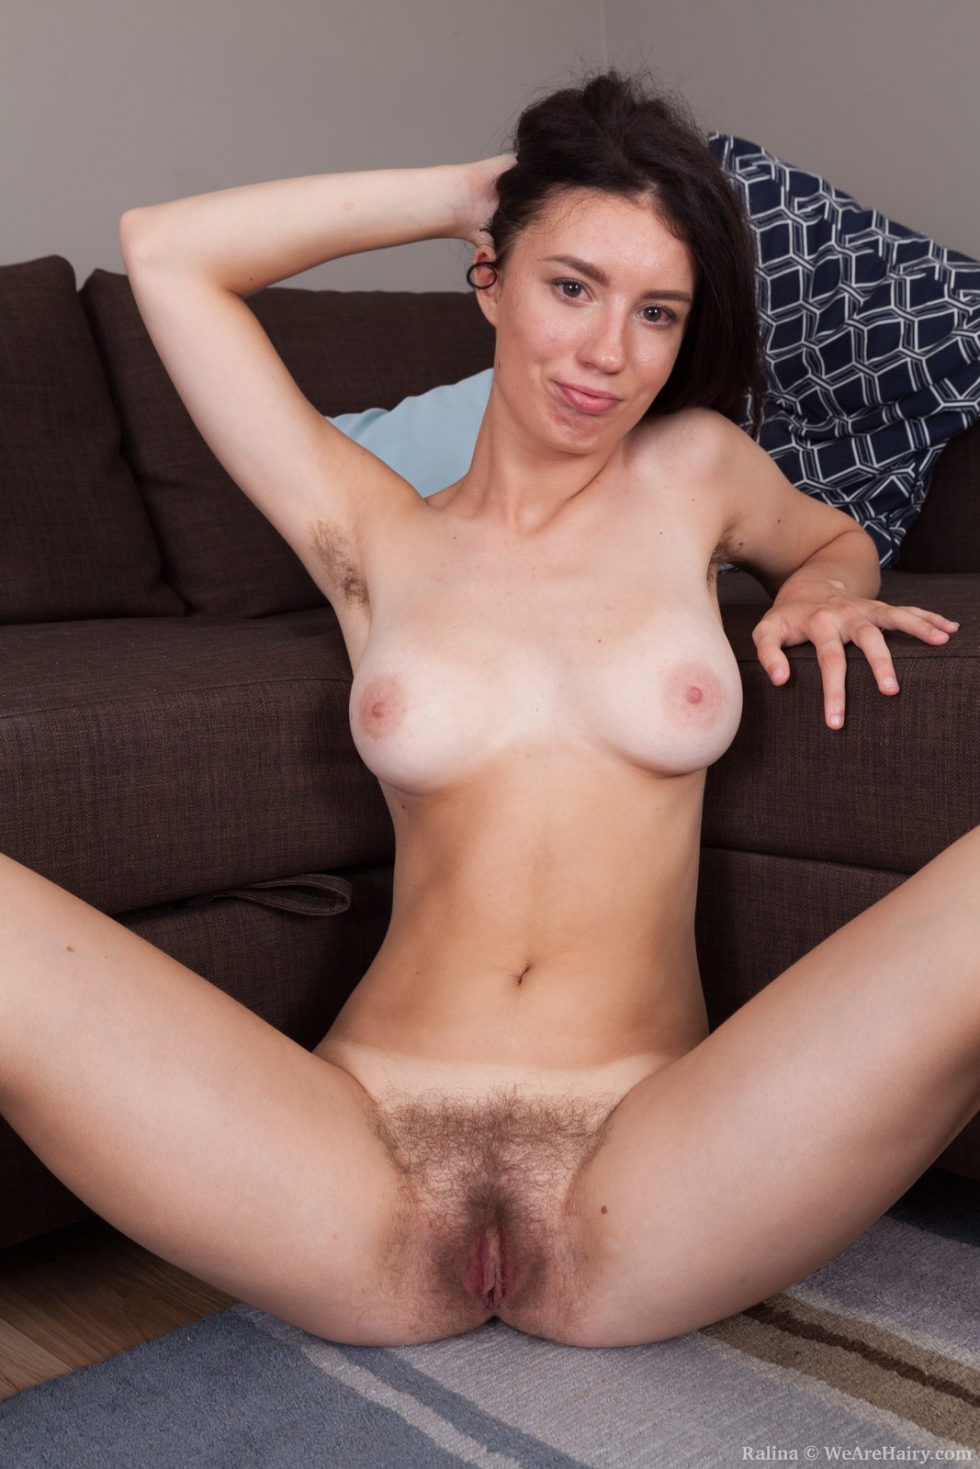 nude selfies on couch